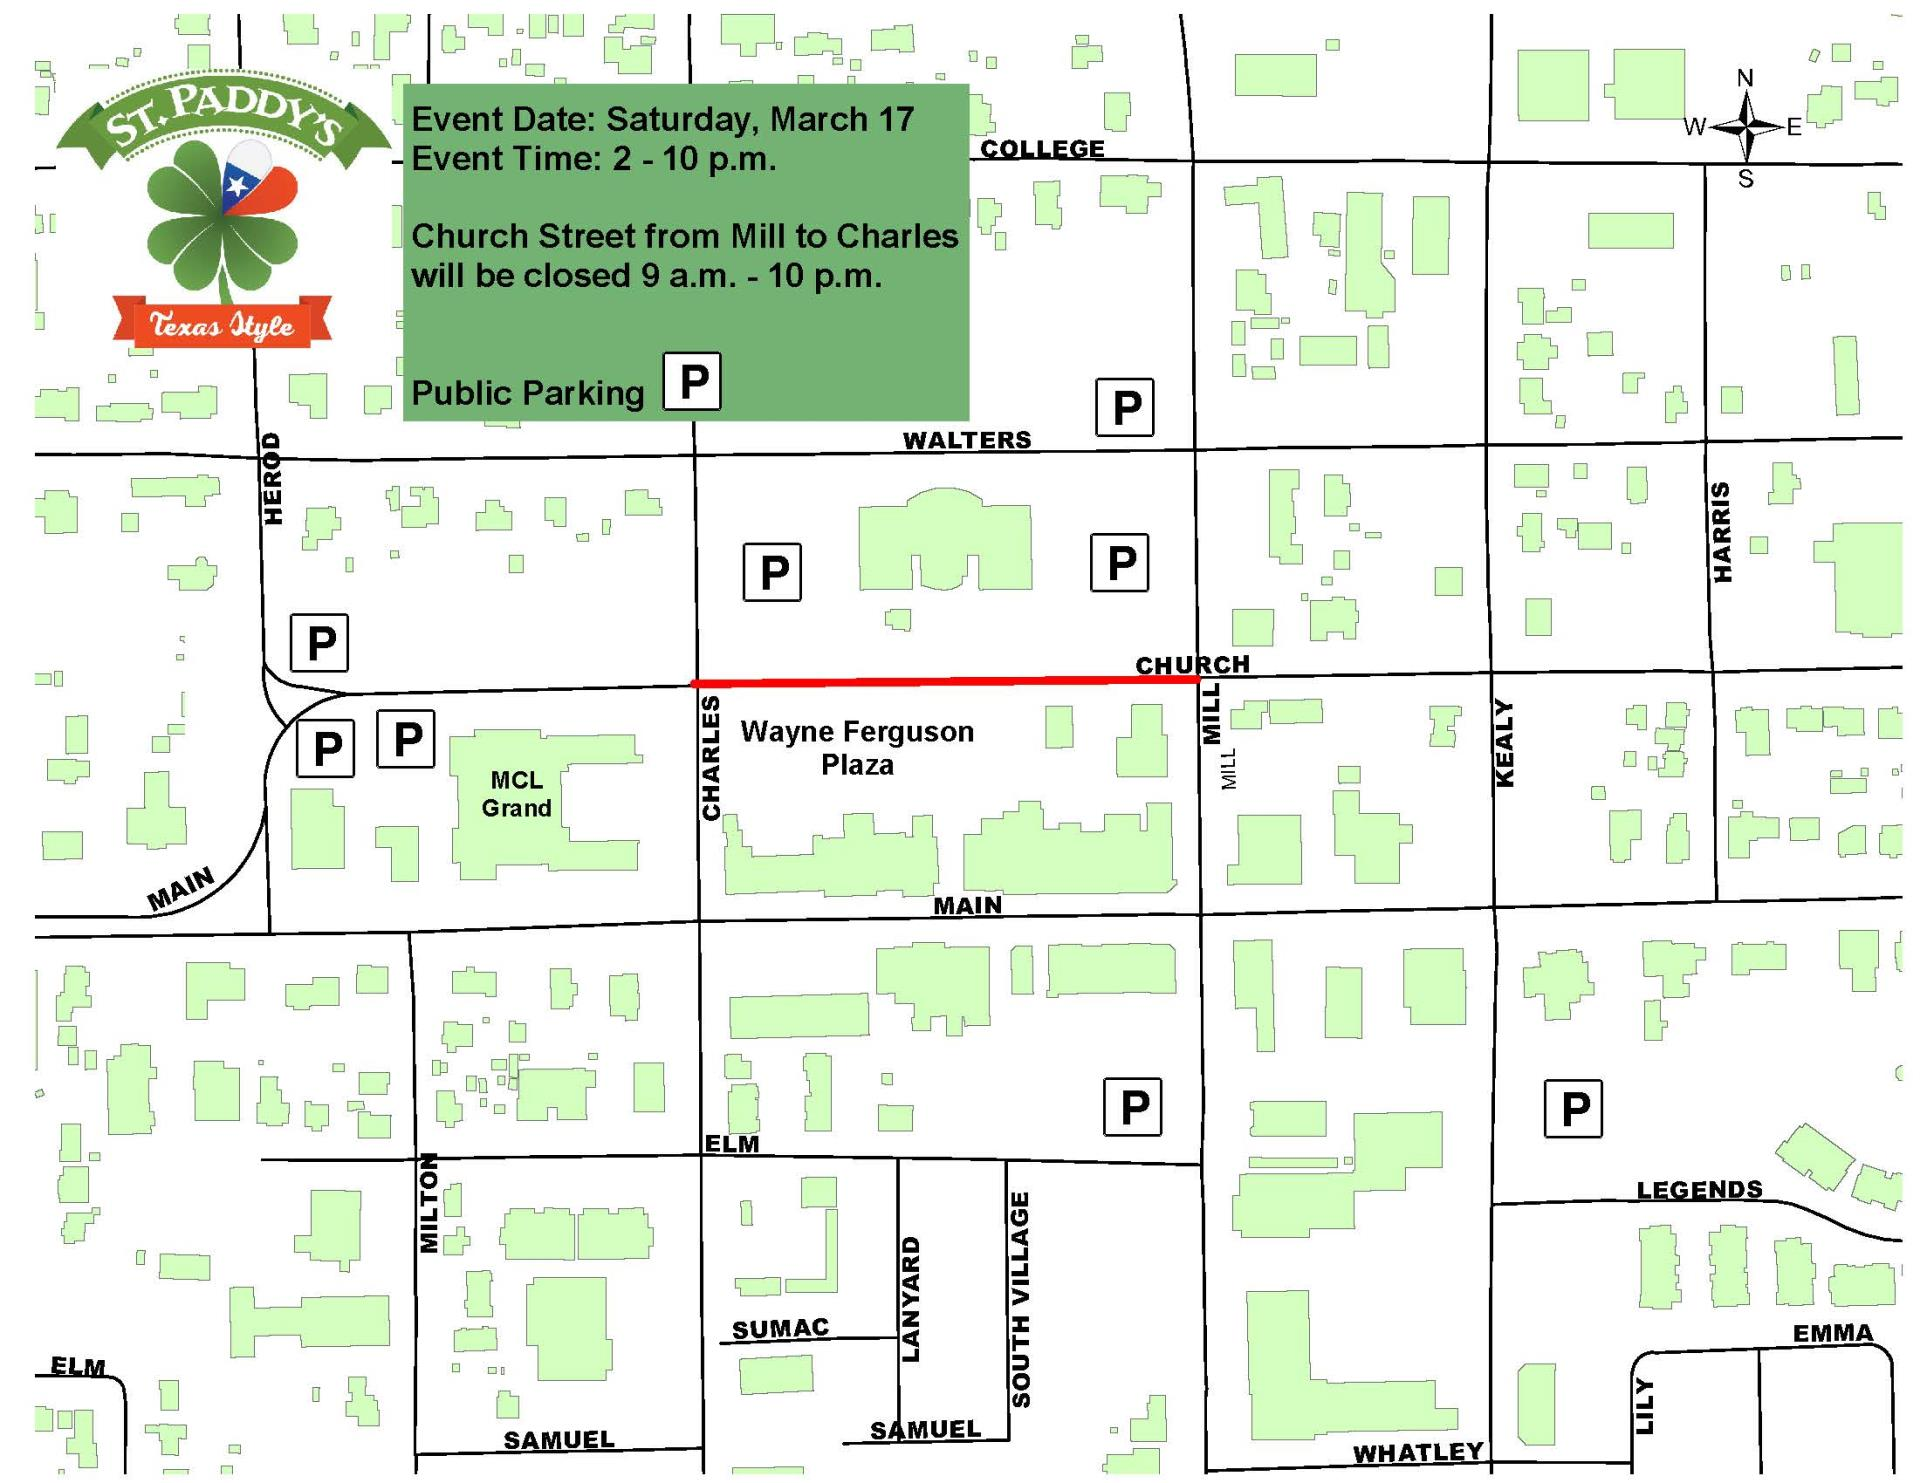 St. Paddy's street closure and parking map